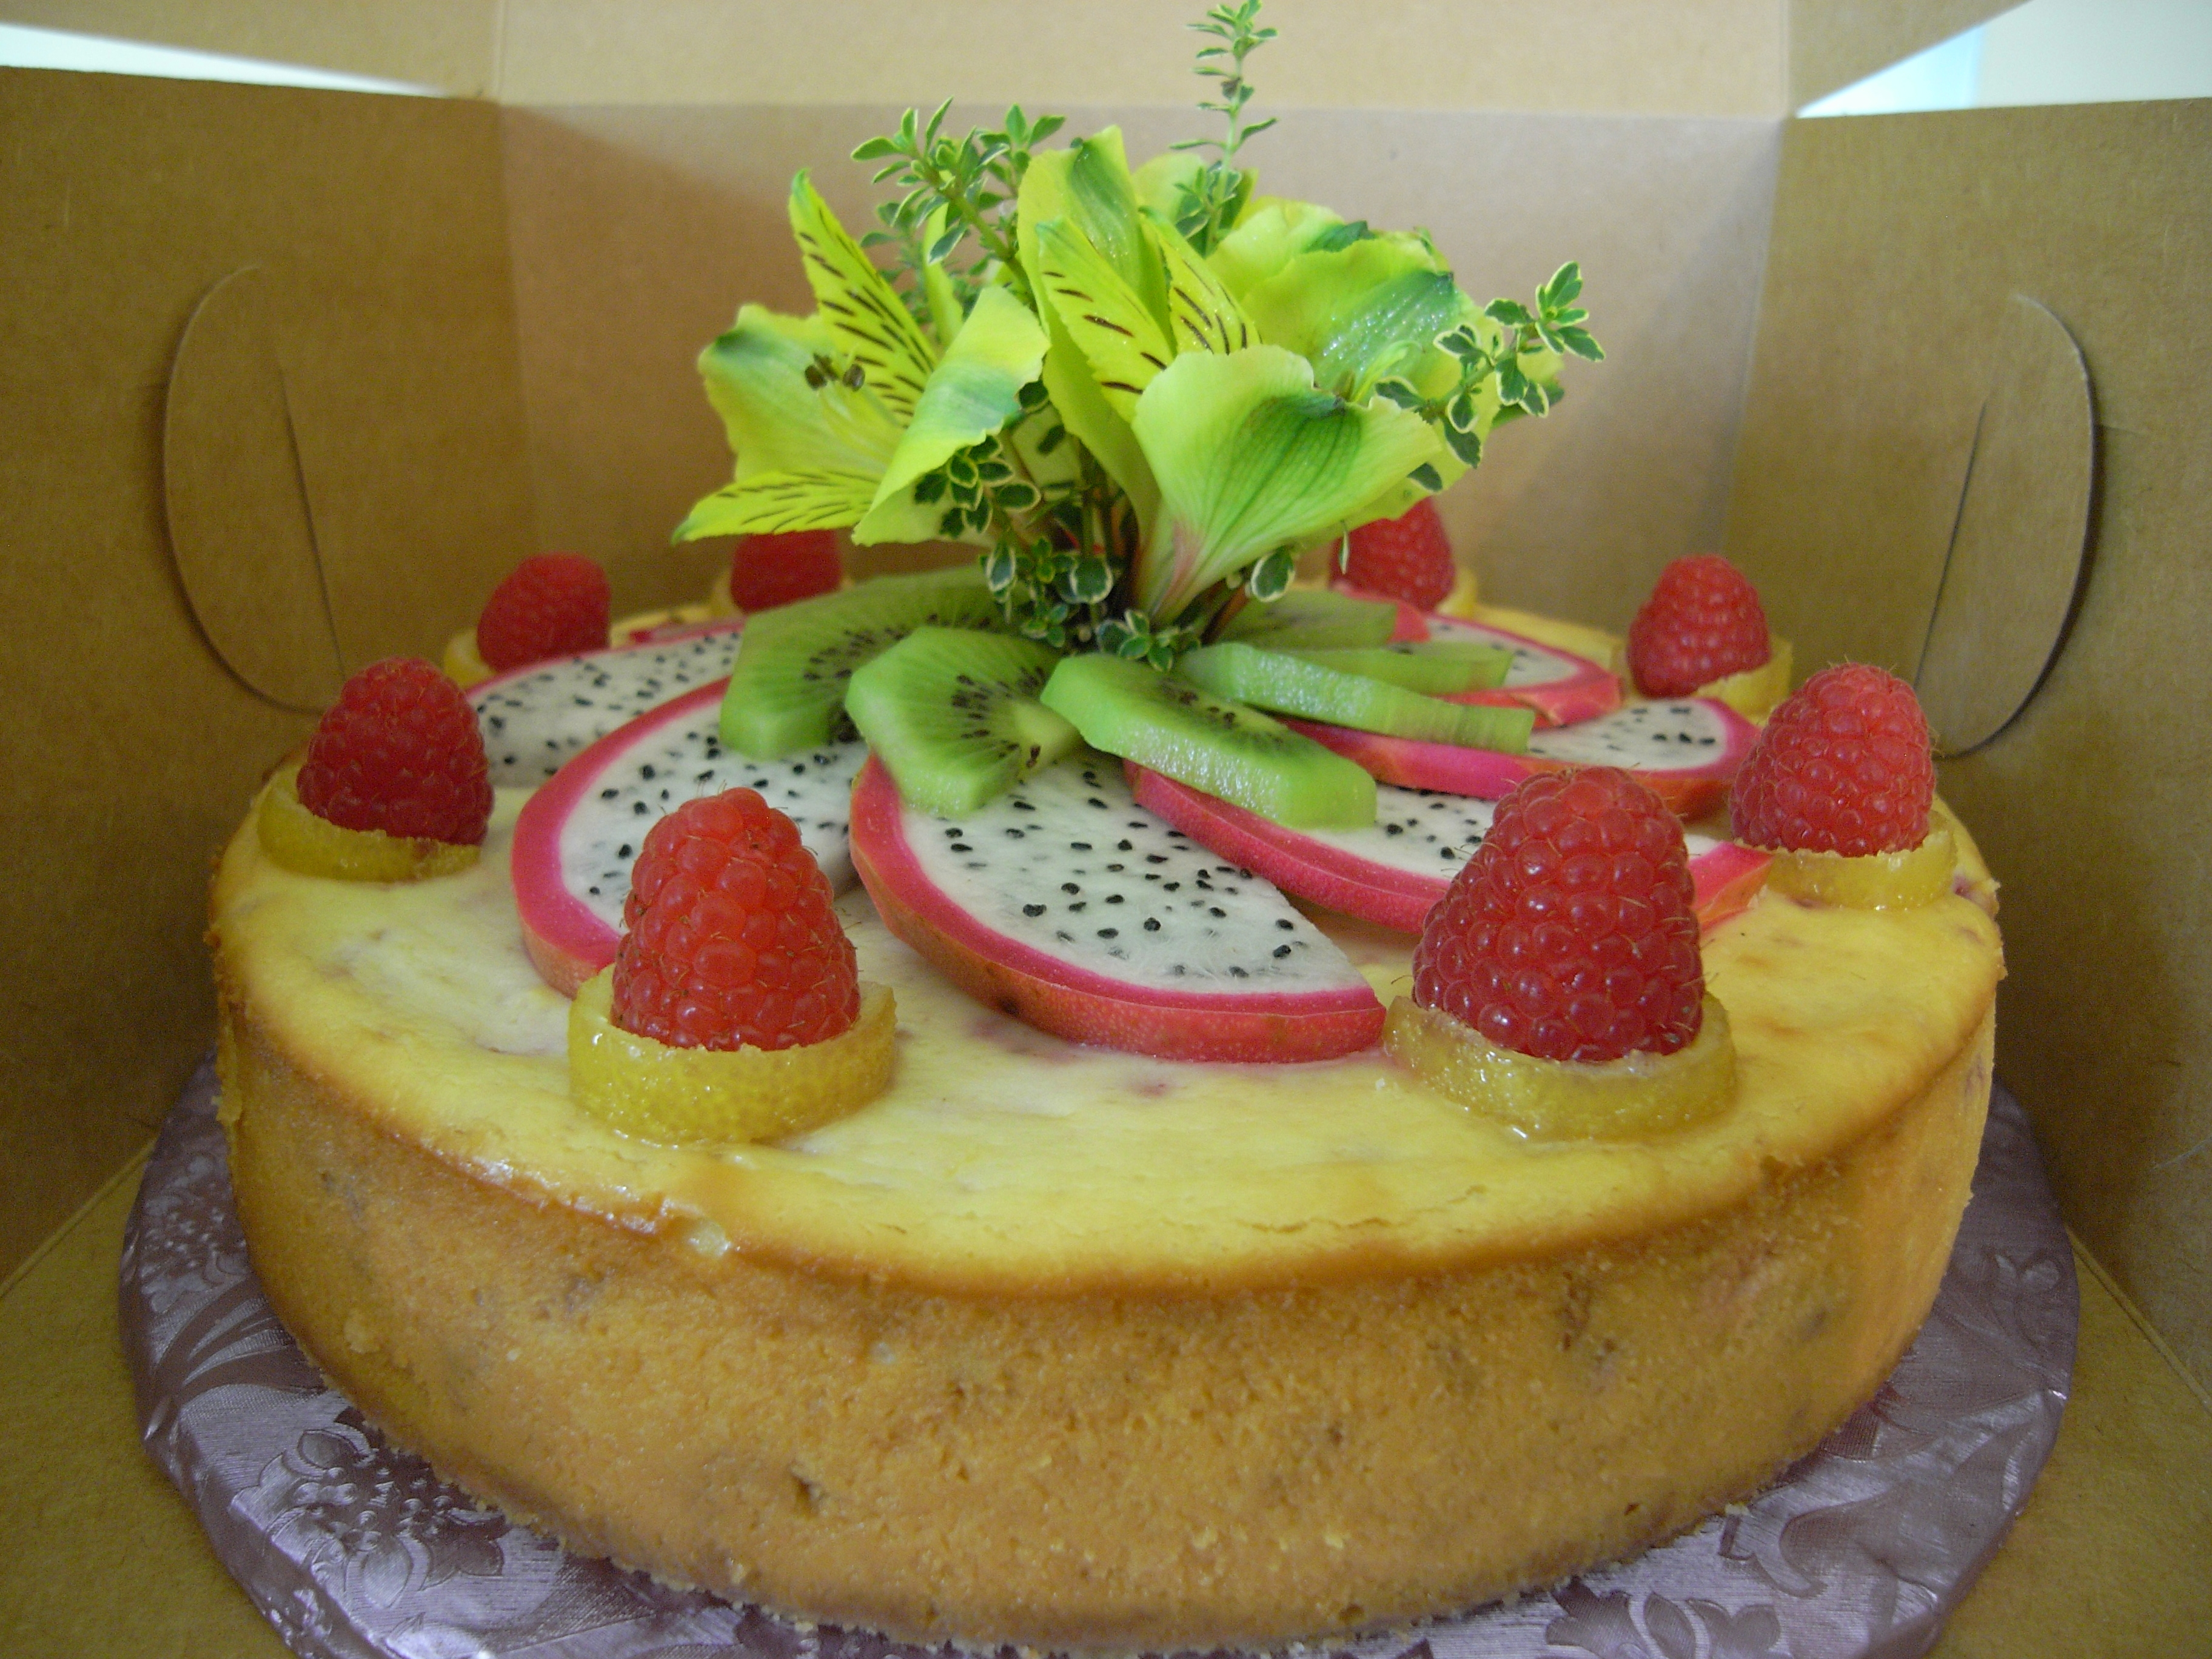 Tropical Cheesecake For A Summer Cookout Just Trying Some ...